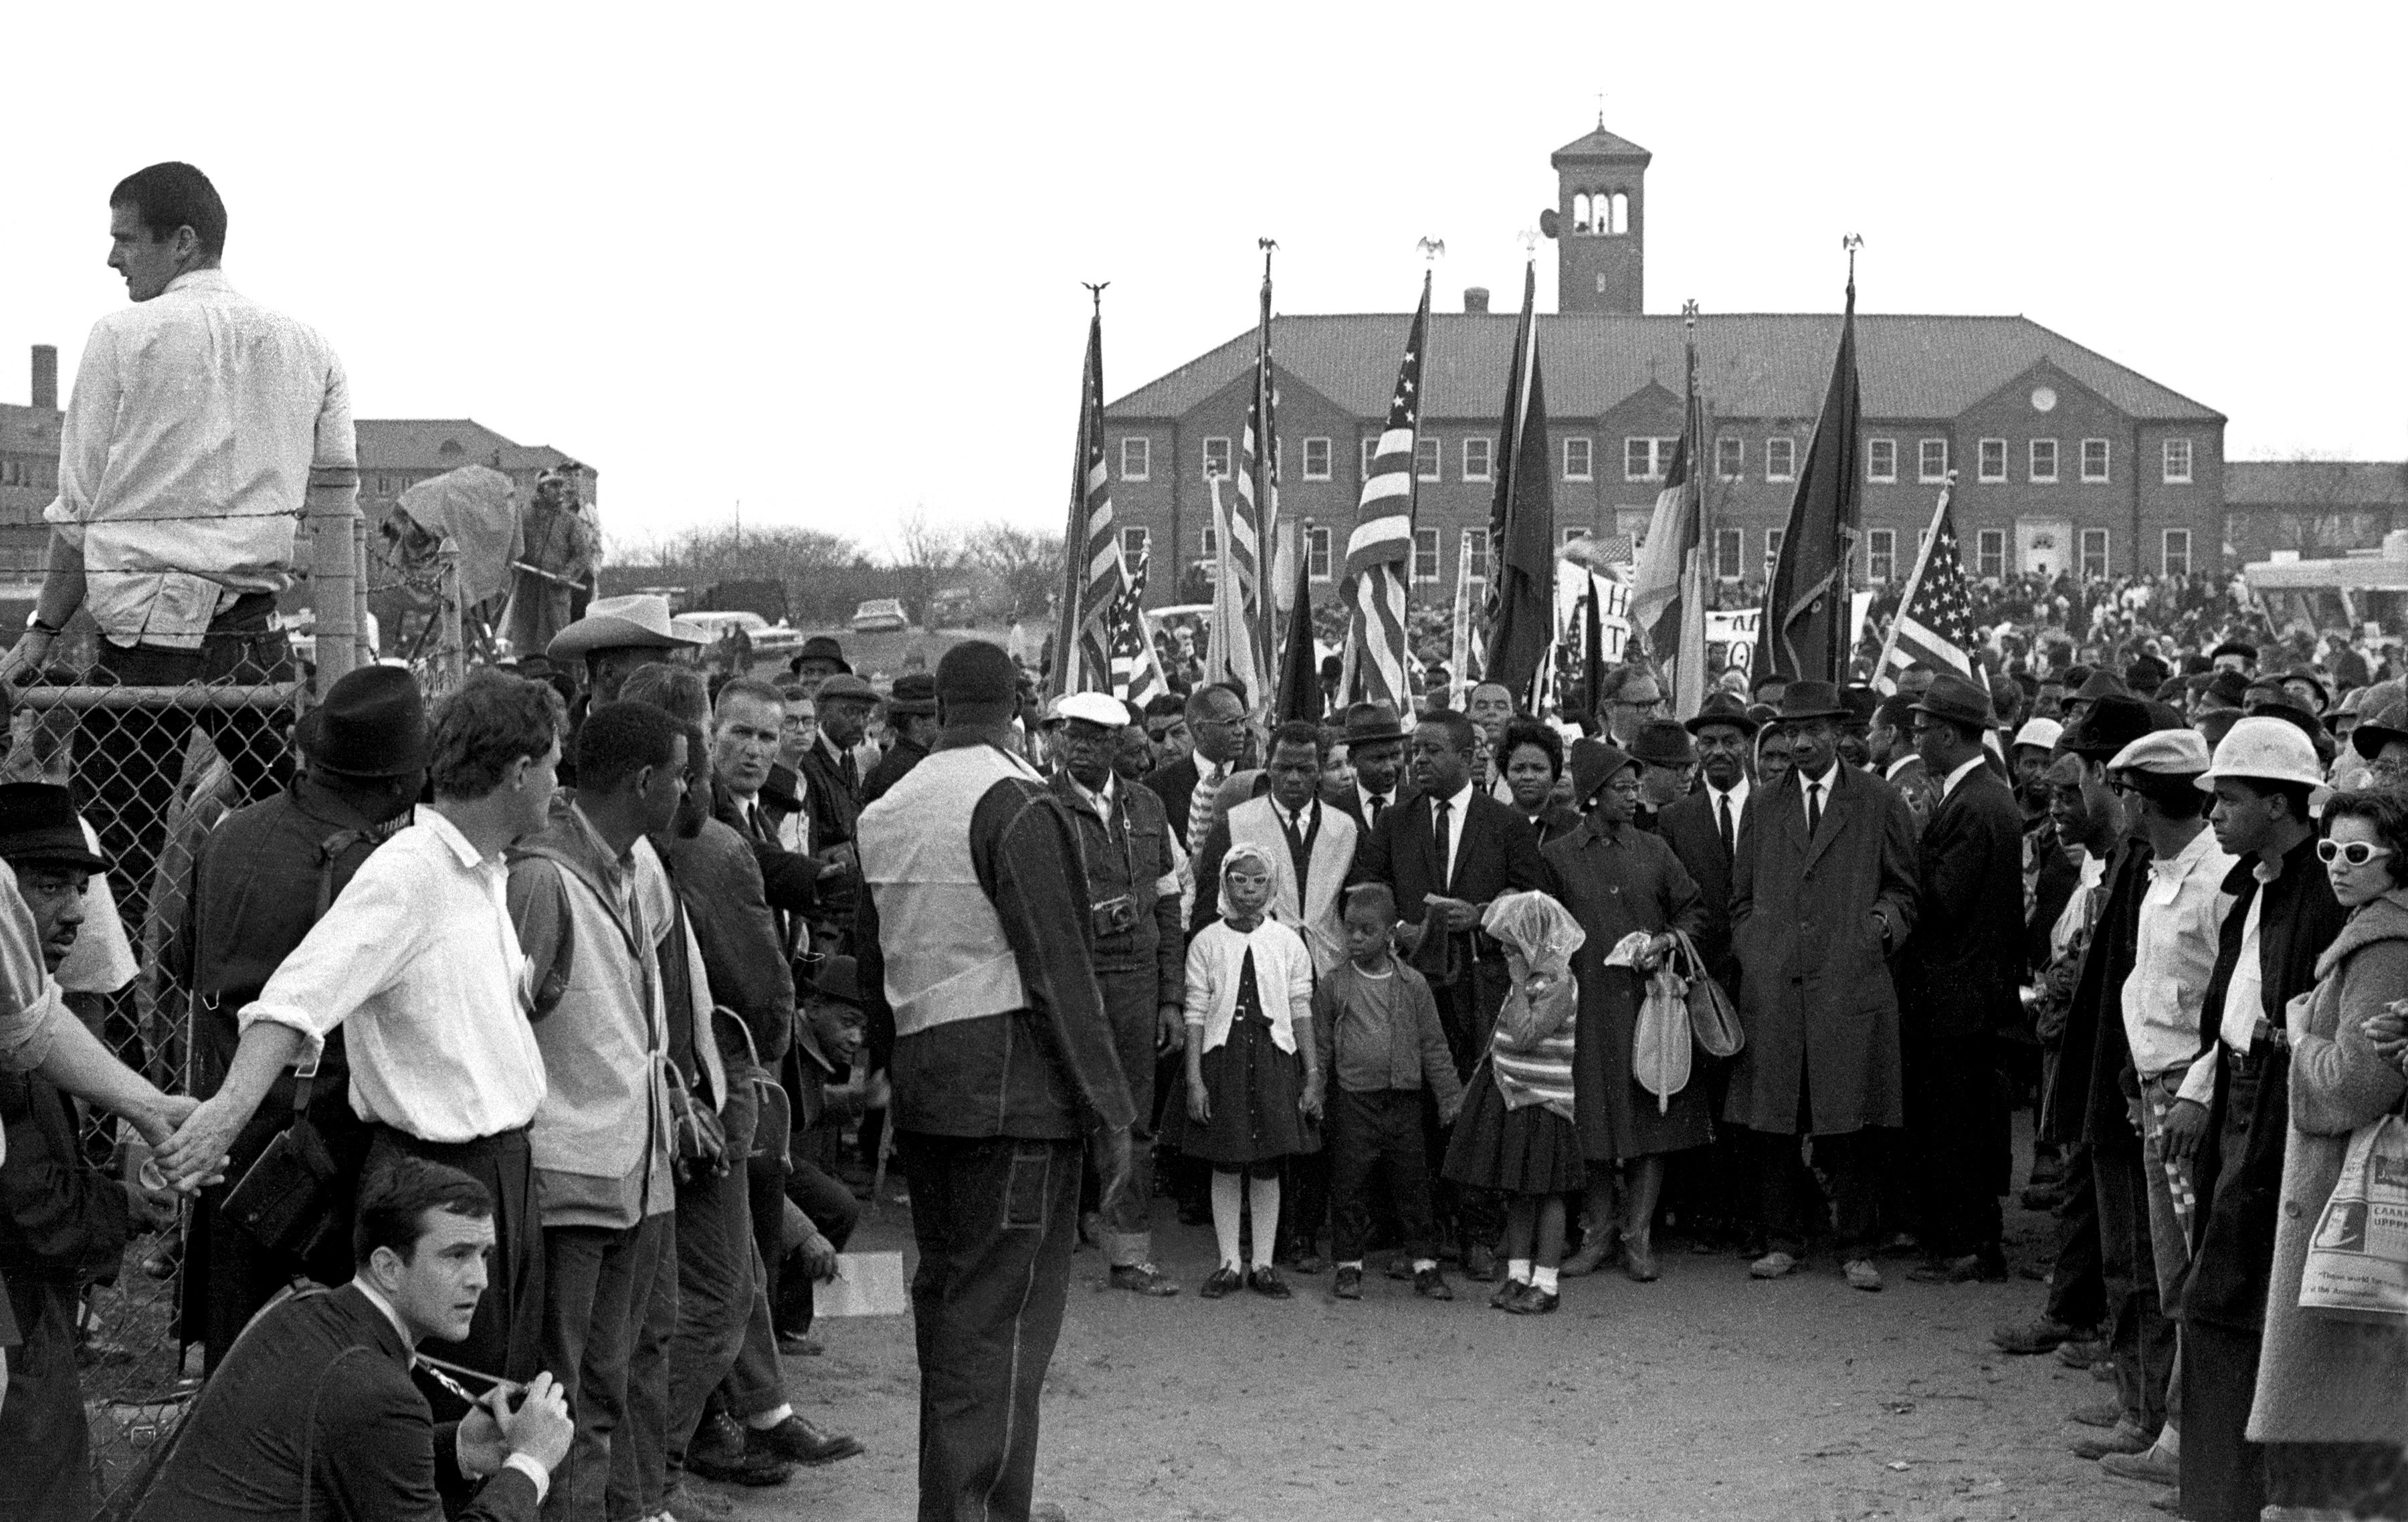 In this black and white image from 1965, John Lewis leads 25,000 marchers in front of City of St. Jude Church in Selma, Ala, who prepare to march to the capitol in Montgomery, Ala.